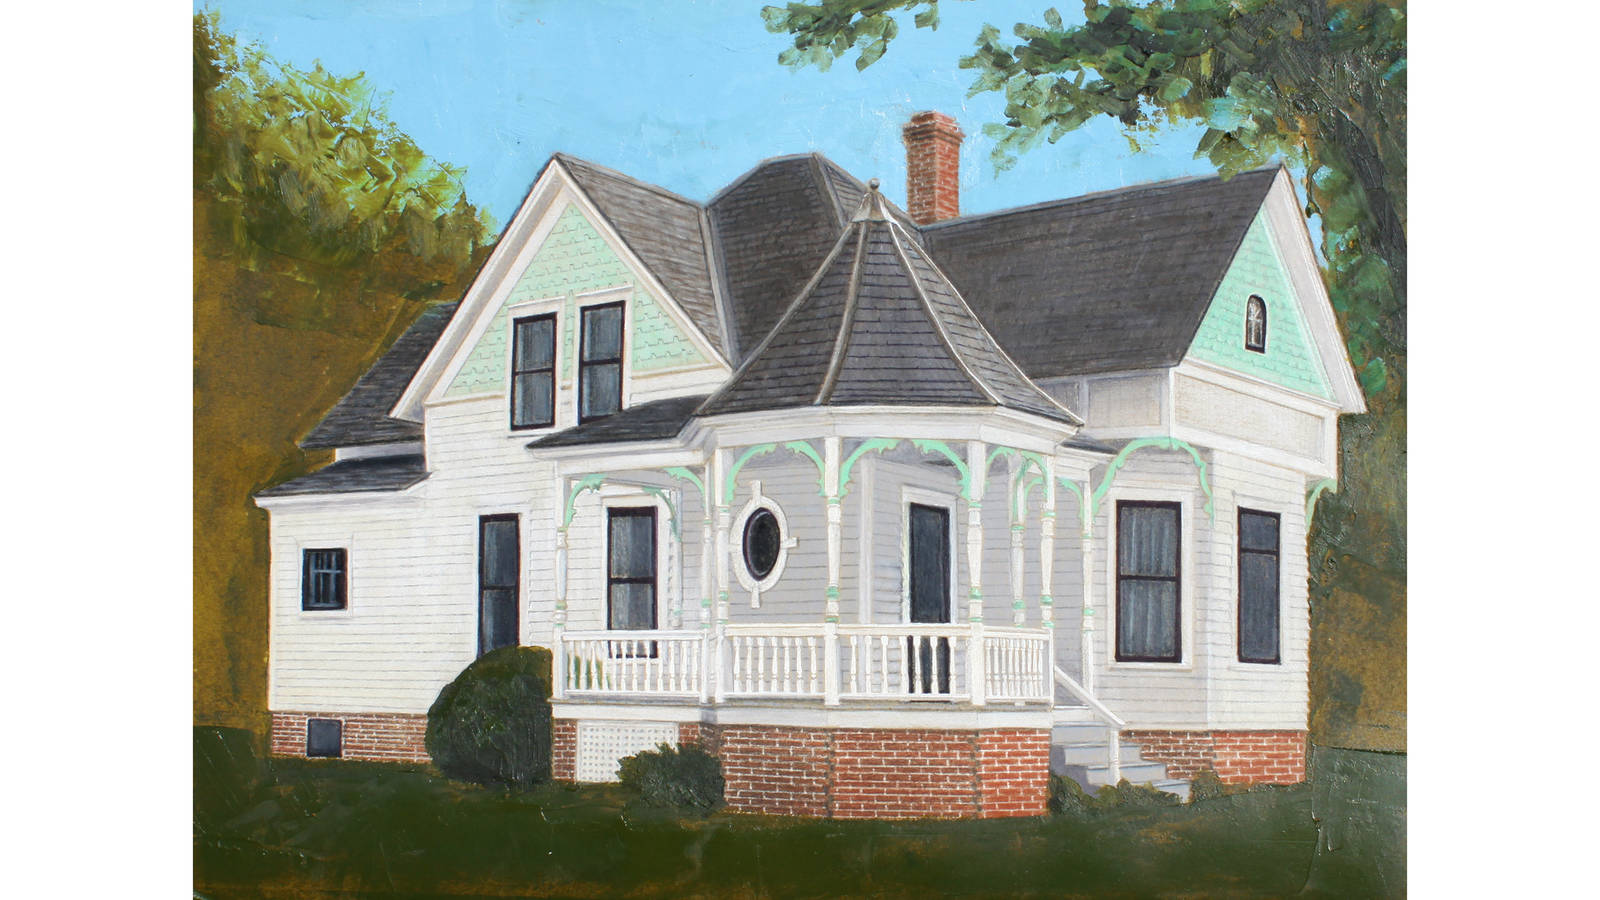 """<h3 style=""""text-align: center; padding: 50px;""""><span class=""""text-Intro-style"""">The C.E. Smith House at Herbert Hoover National Historic Site. Colored pencil and oil paint on paper, 2018.</span></h3>"""